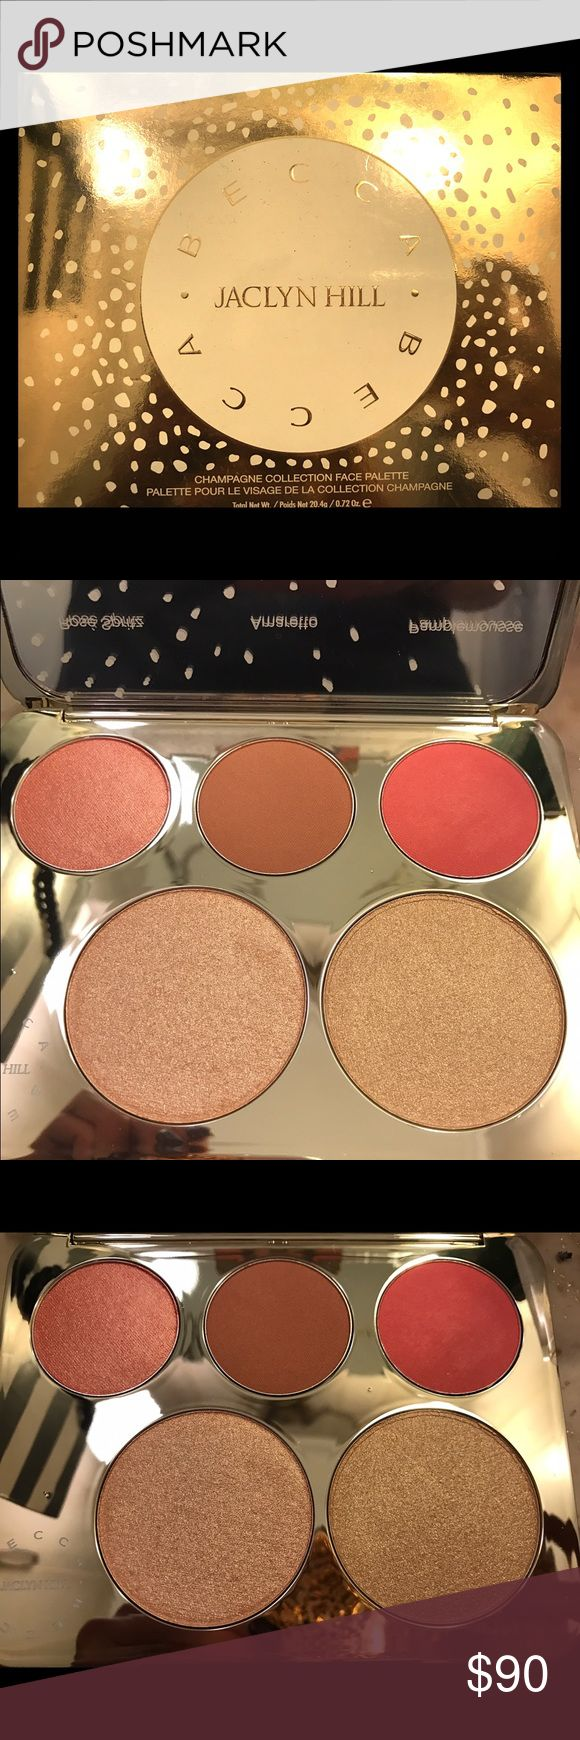 Jaclyn Hill x Becca Palette Jaclyn Hill x Becca champagne collection face palette. Limited edition item. No longer available to buy. Brand new and authentic. Only taken out of box for pictures. Also comes with sample of Becca's backlight priming filter. Has 2 blush colors & 3 highlighting colors. New shades were created just for this palette. Open to offers. Open to trades specifically VS Pink clothes. BECCA Makeup